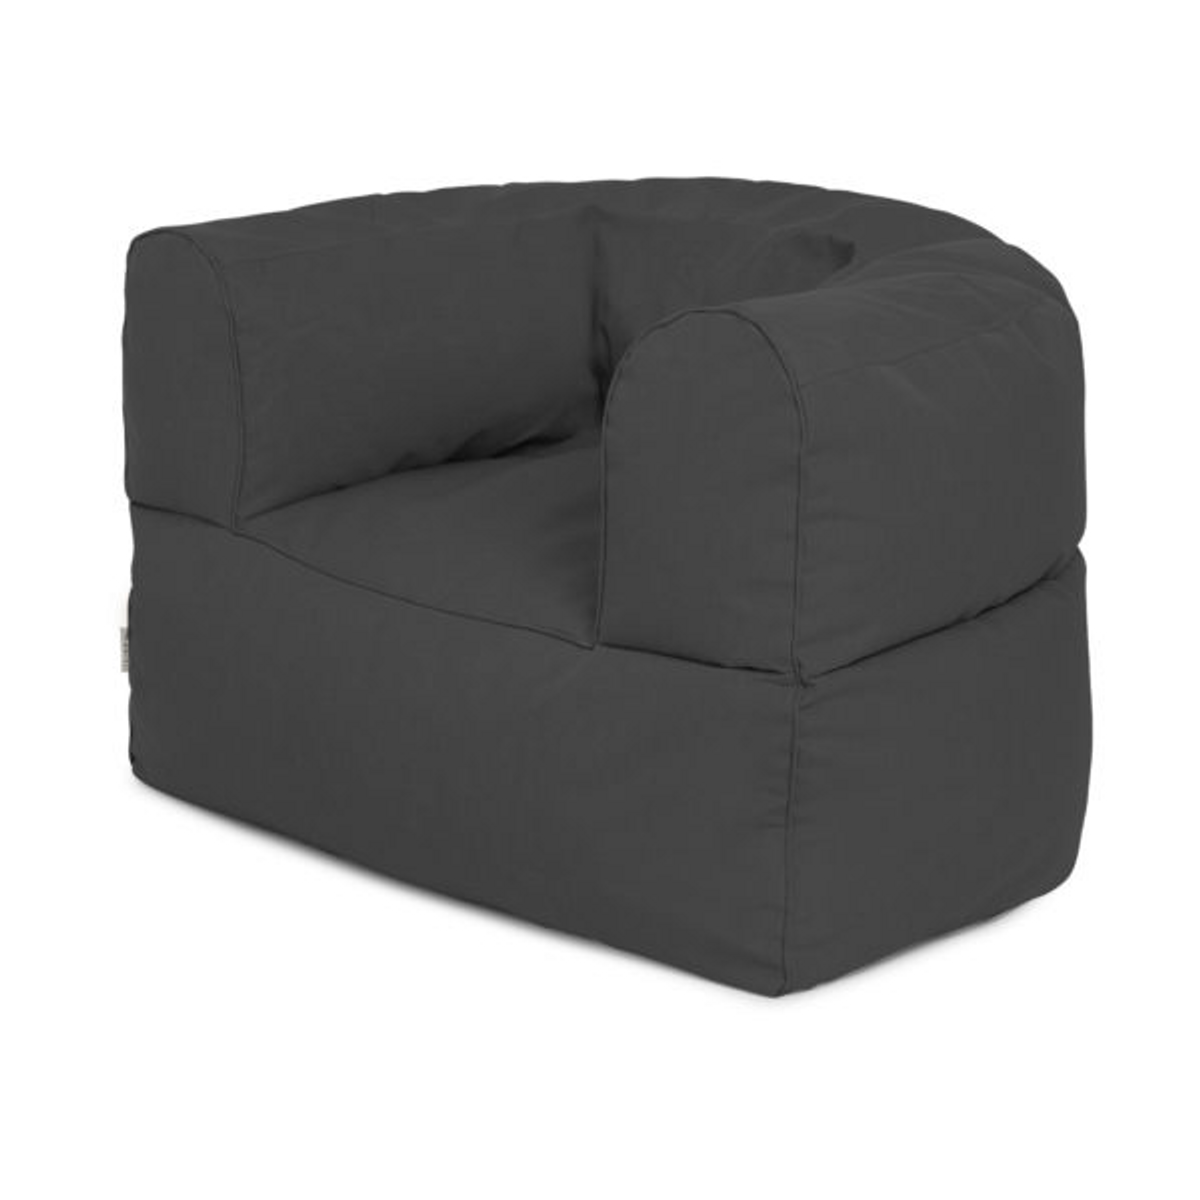 Arm-strong chair